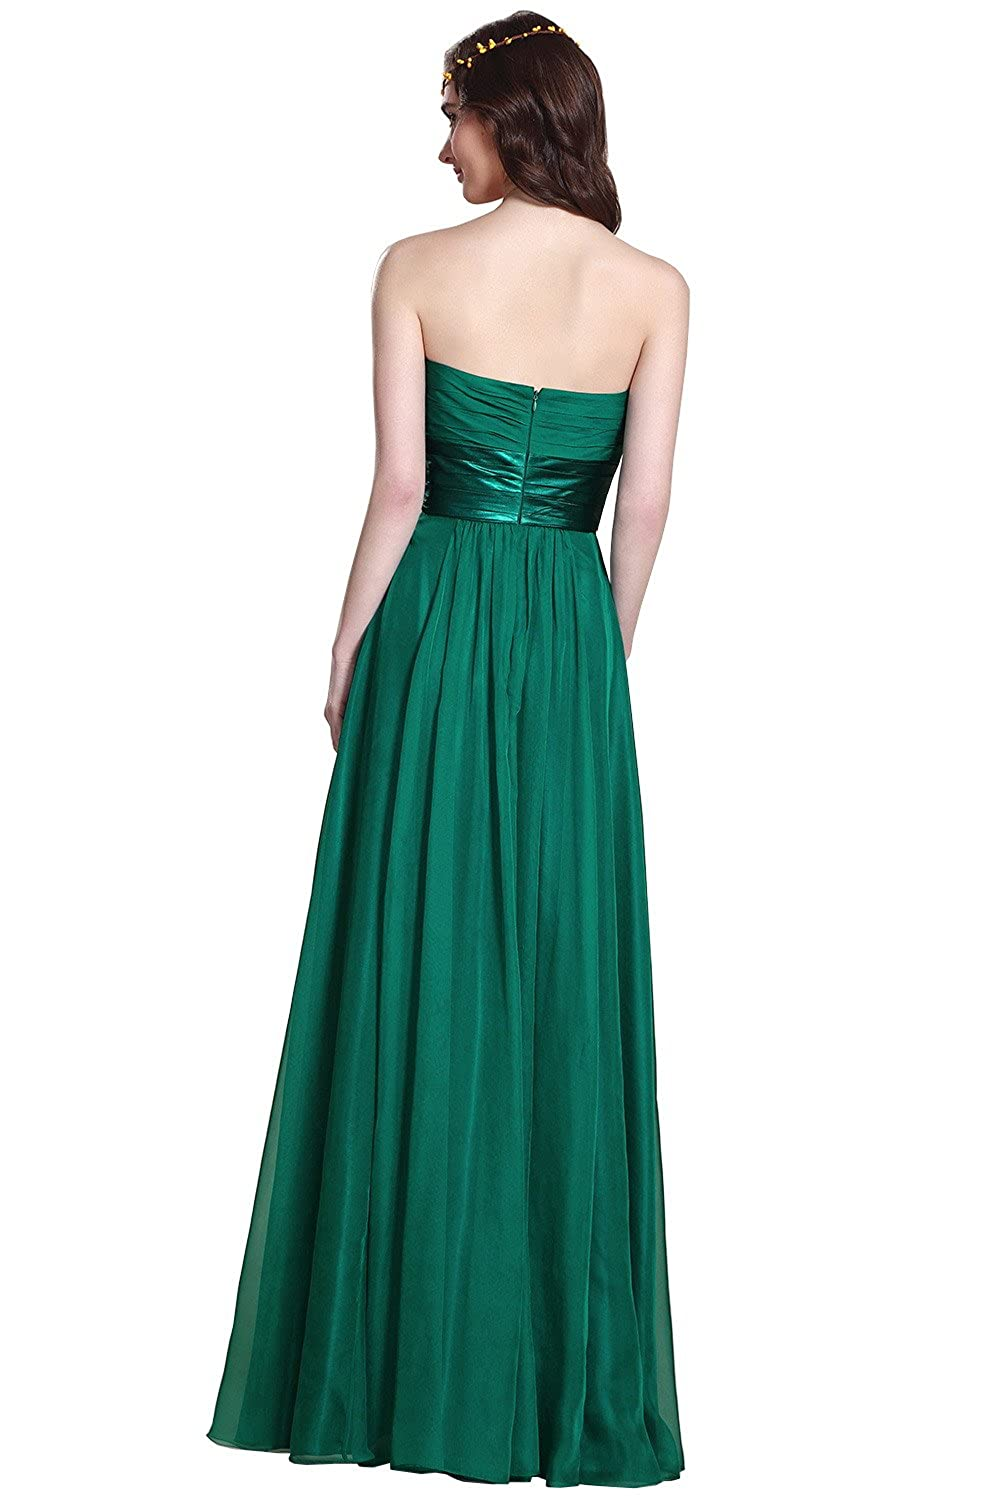 Amazon.com  Strapless Dark Green Bridesmaid Dress Evening Gown (07151404)   Clothing 79b8e80b6